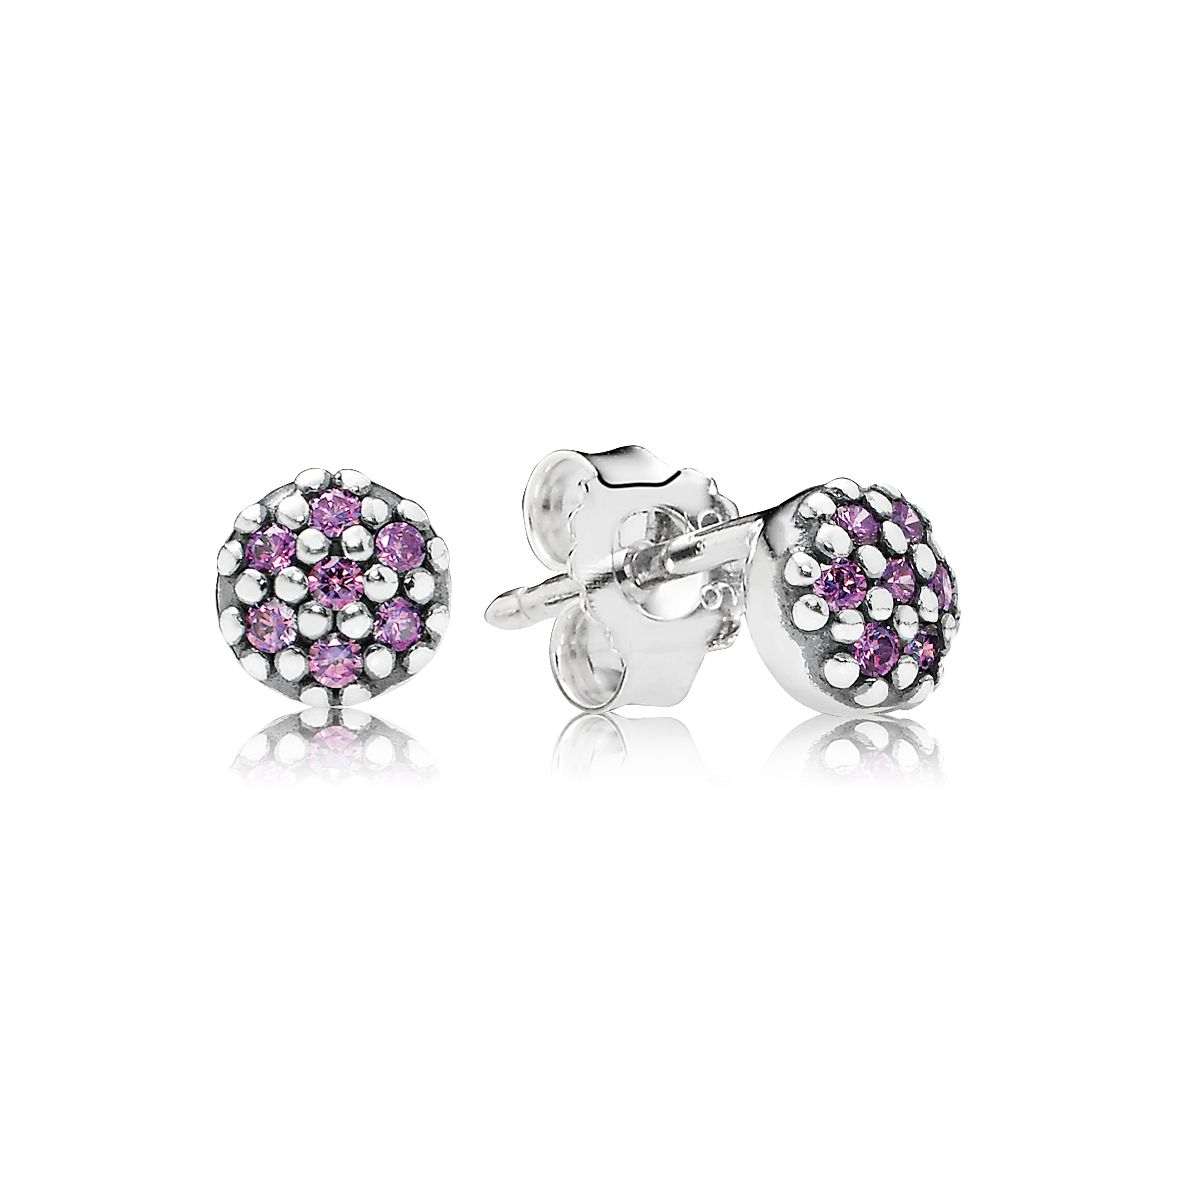 Pandora Pave silver stud earring with cubic zirconia